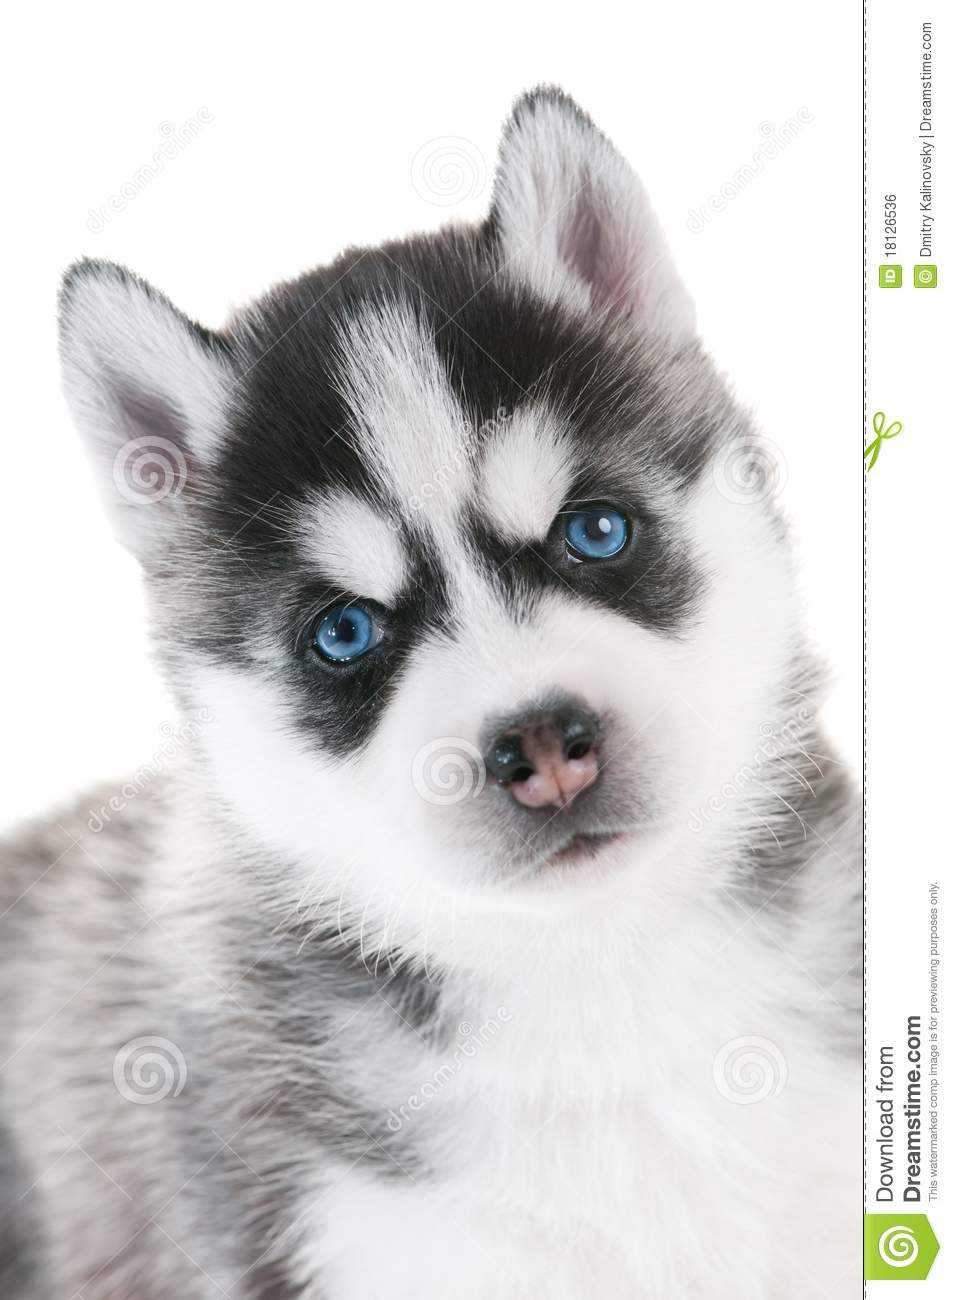 Siberian Husky Puppy With Blue Eyes Royalty Free Stock Image - Image ...